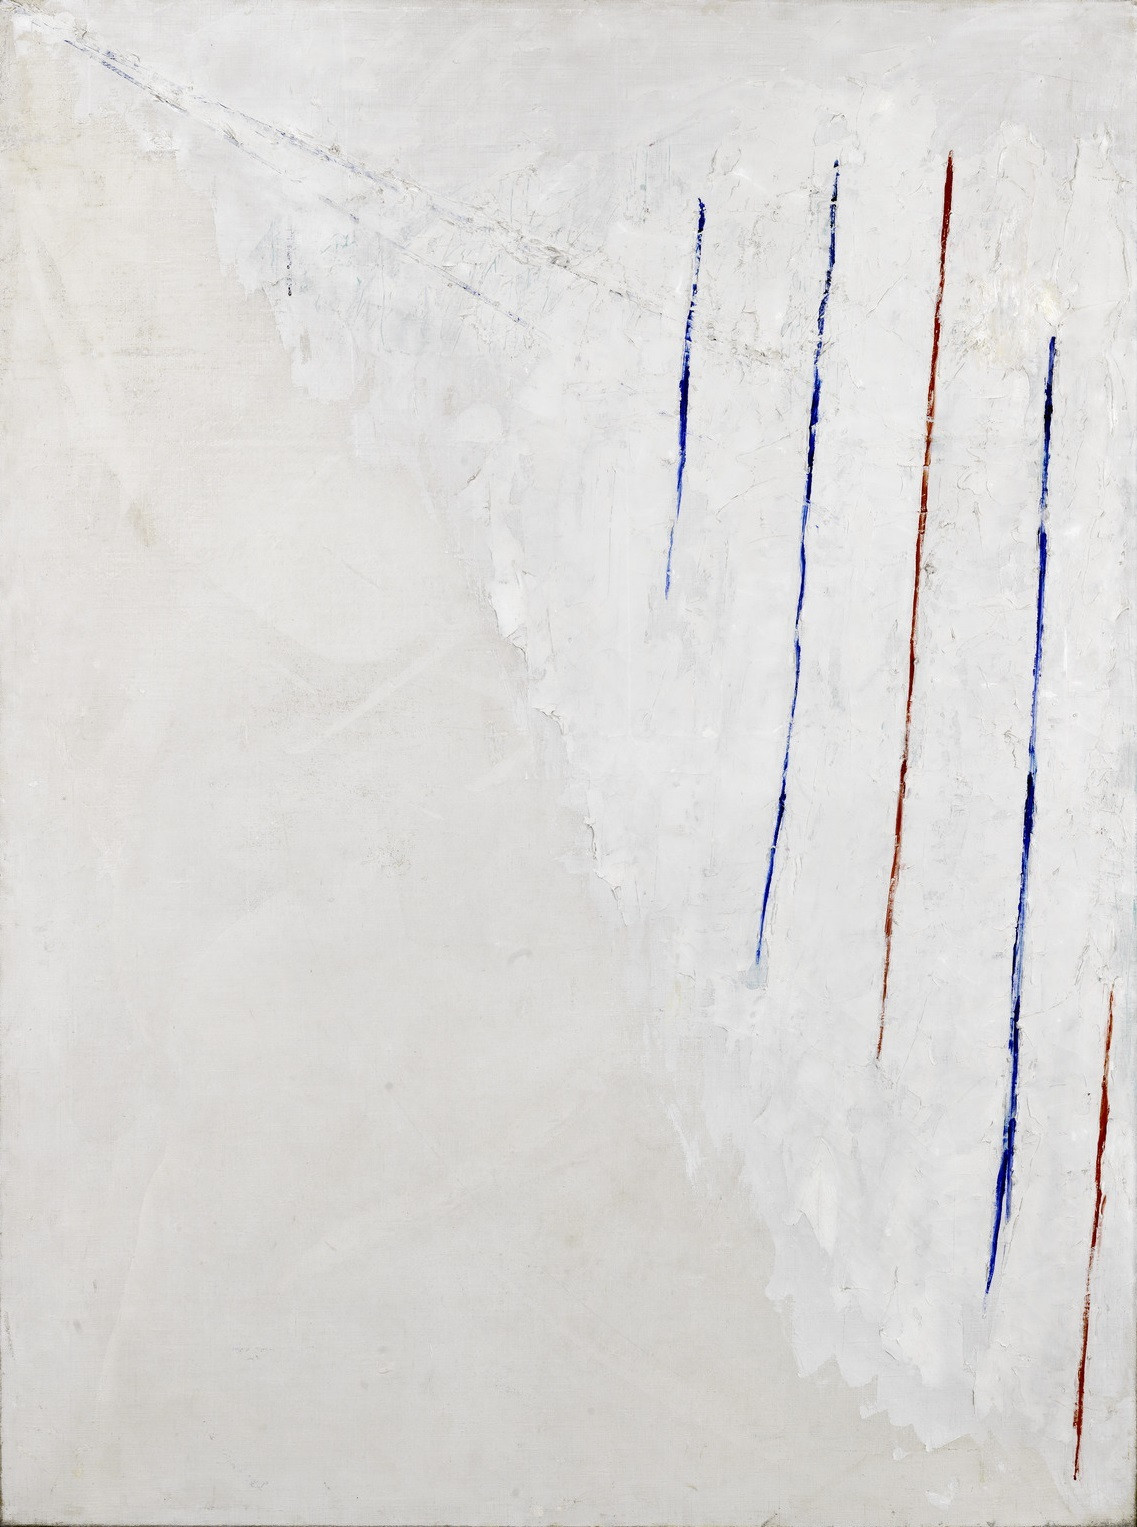 Alejandro Otero. Colored Lines on White Background. 1950